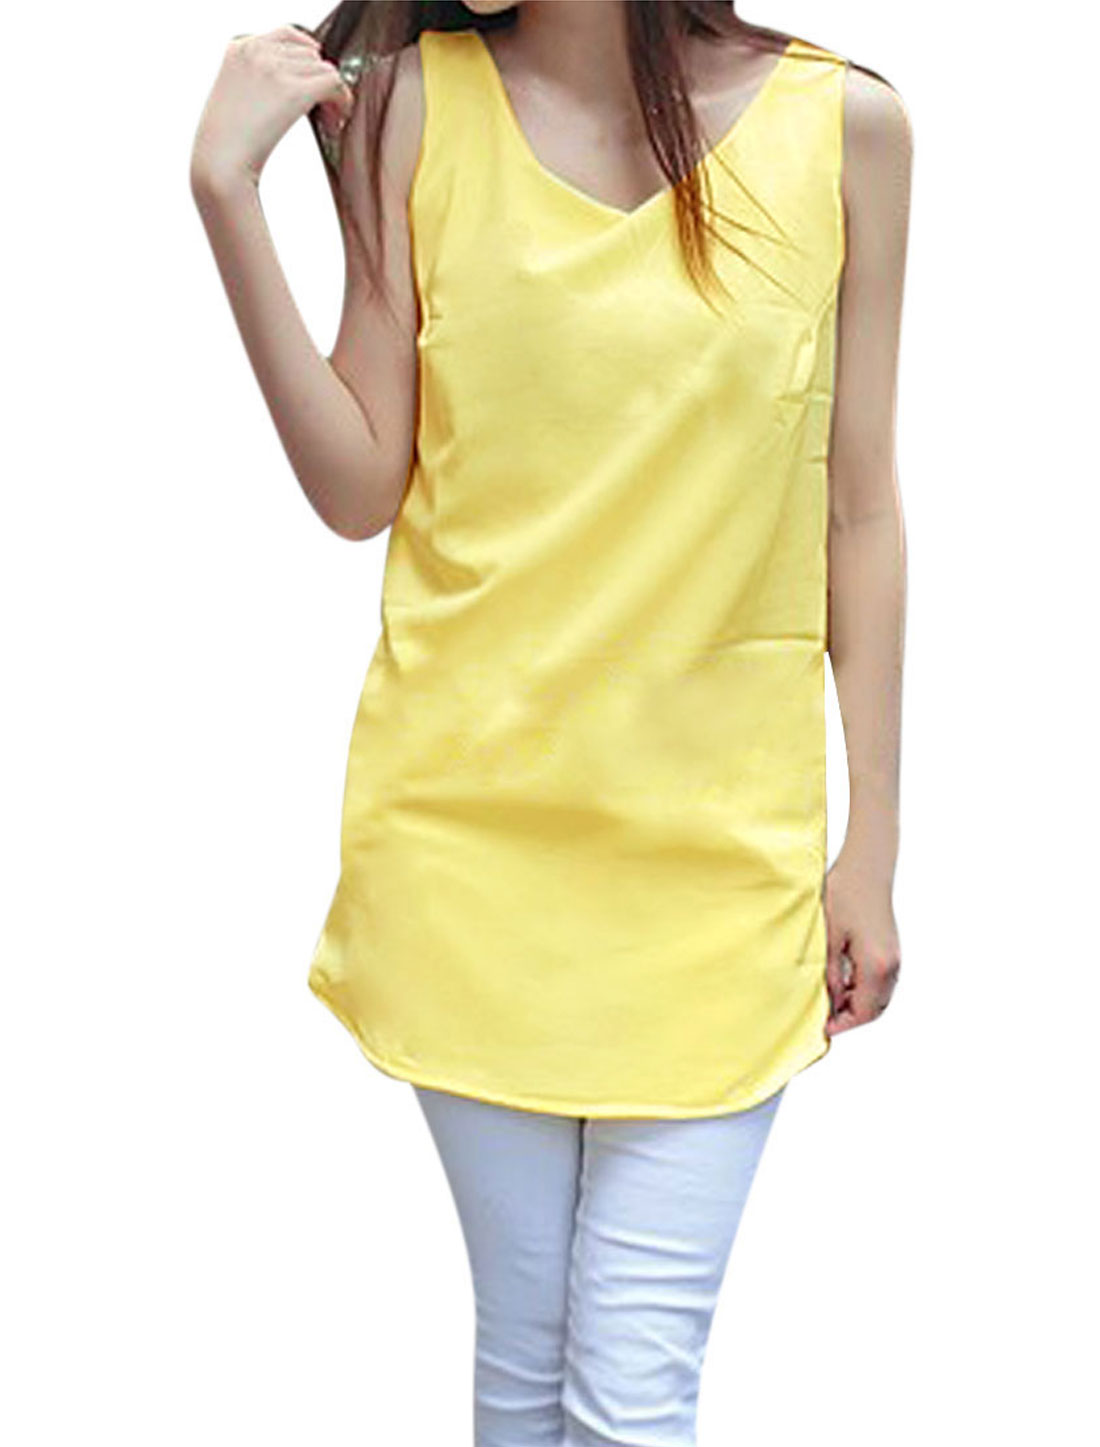 Lady Chiffon Sleeveless Modern Sun Tops Blouses Light Yellow S